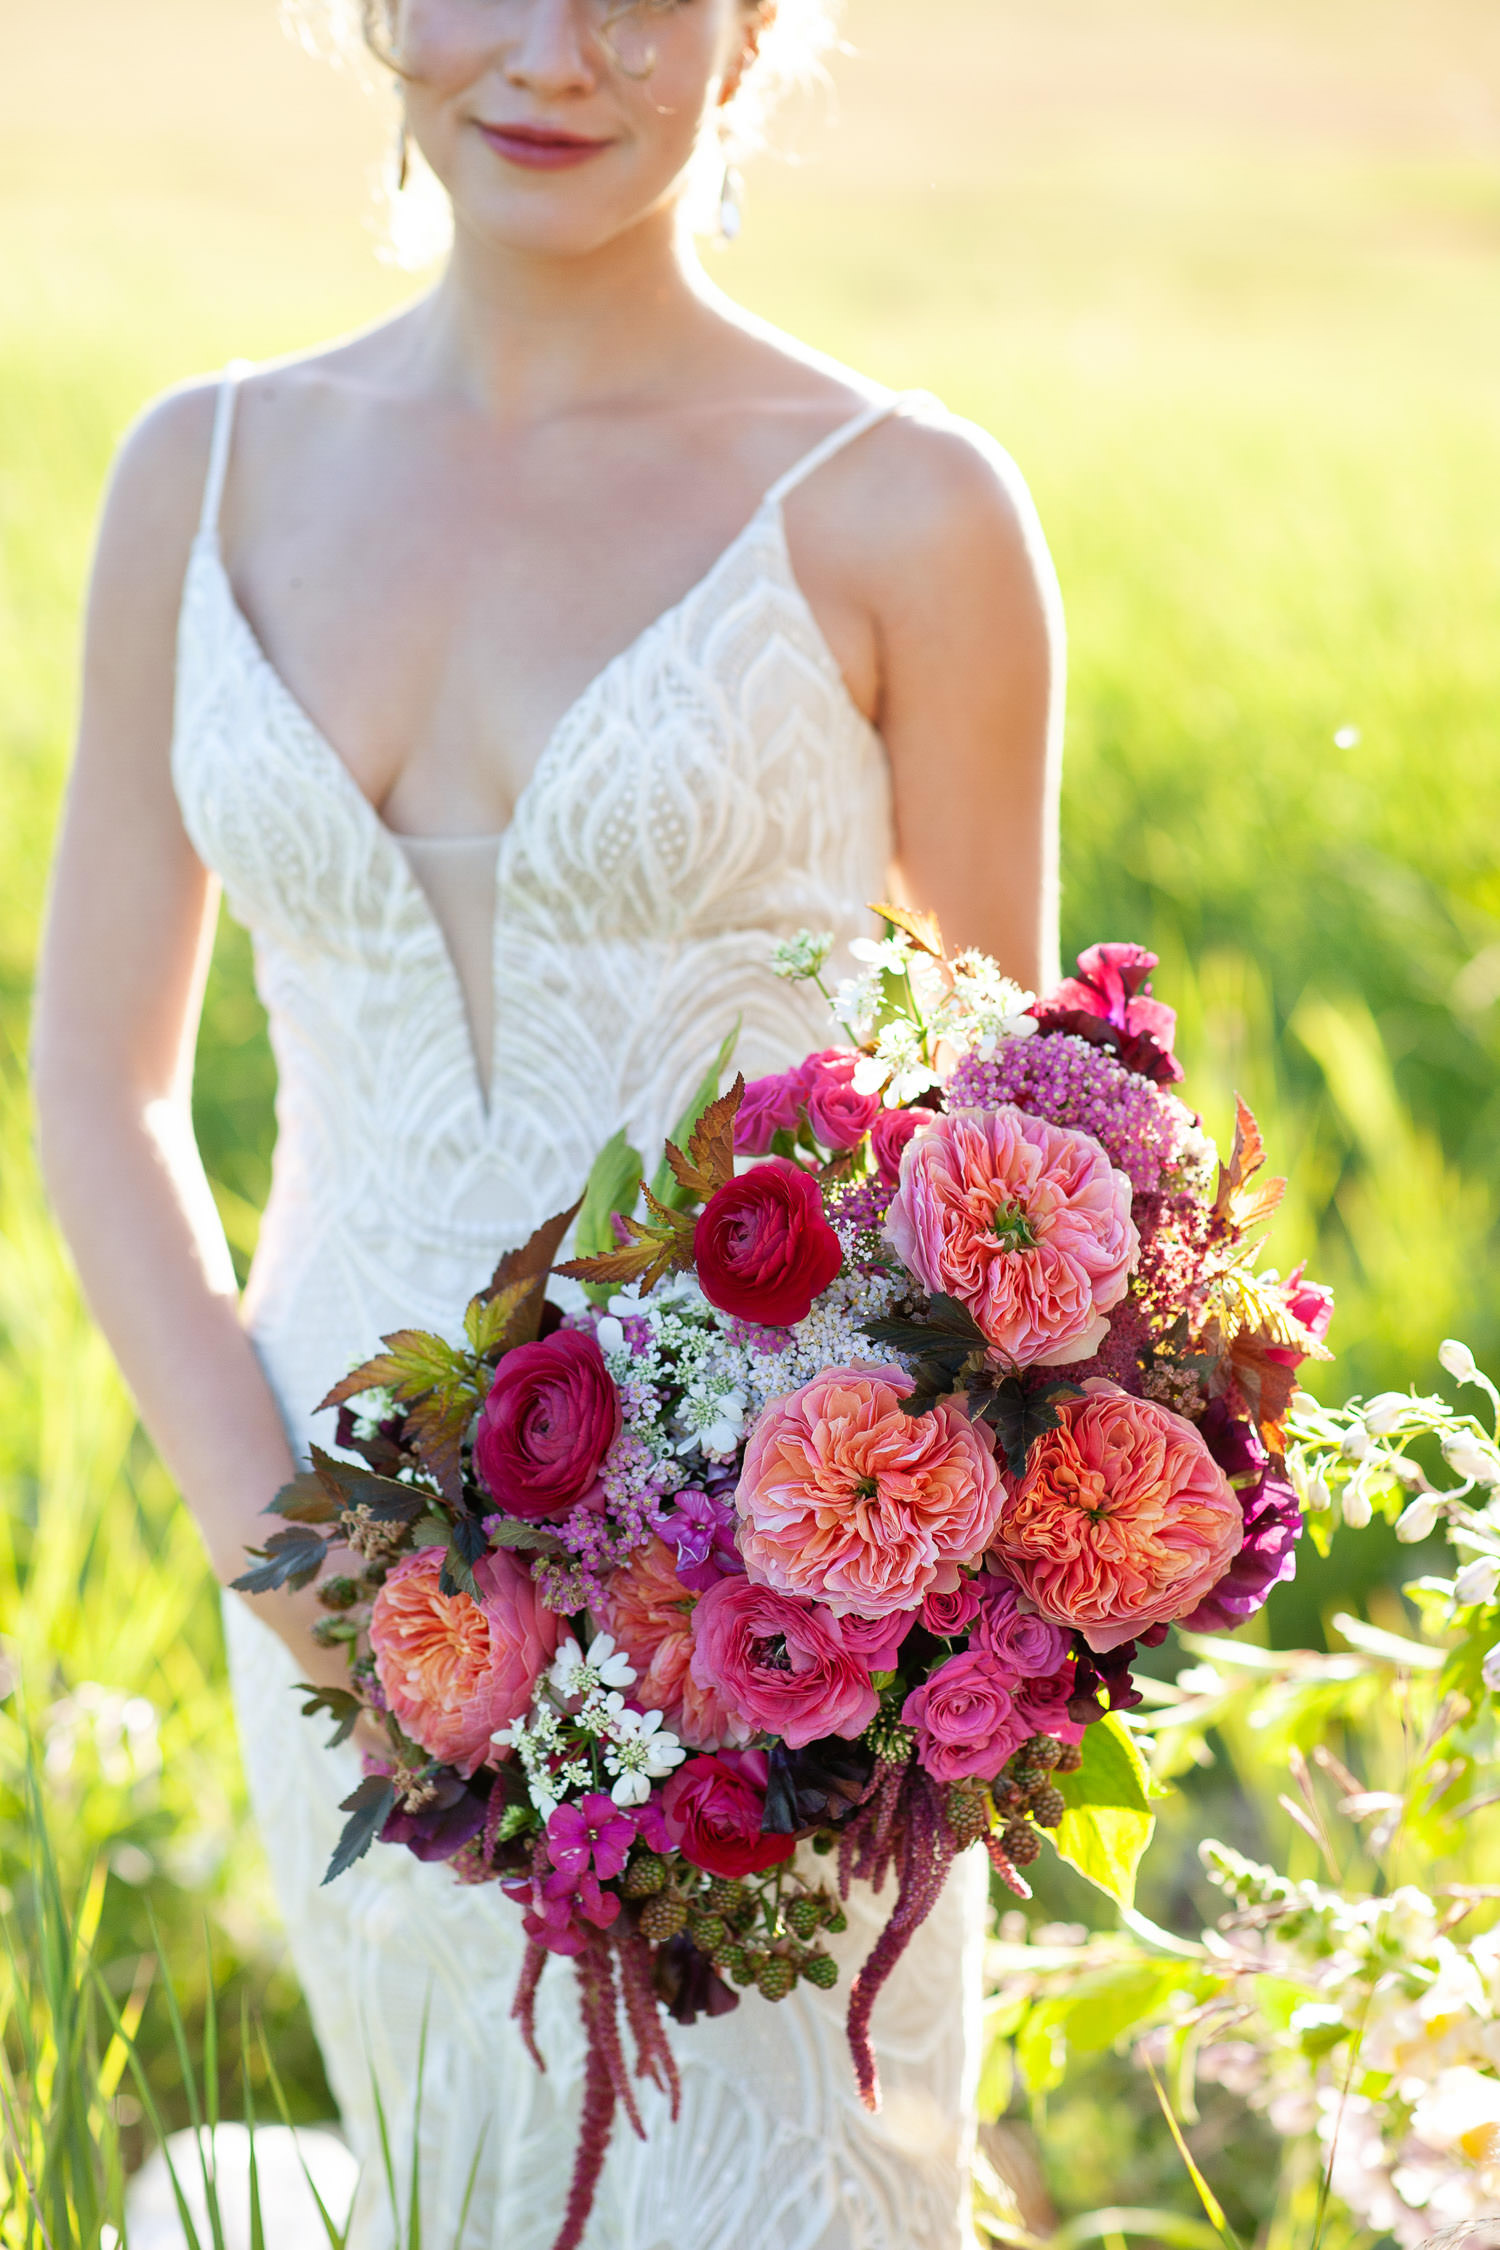 bride carries a rich pink bouquet from Flowers by Janie captured by Tara Whittaker Photography